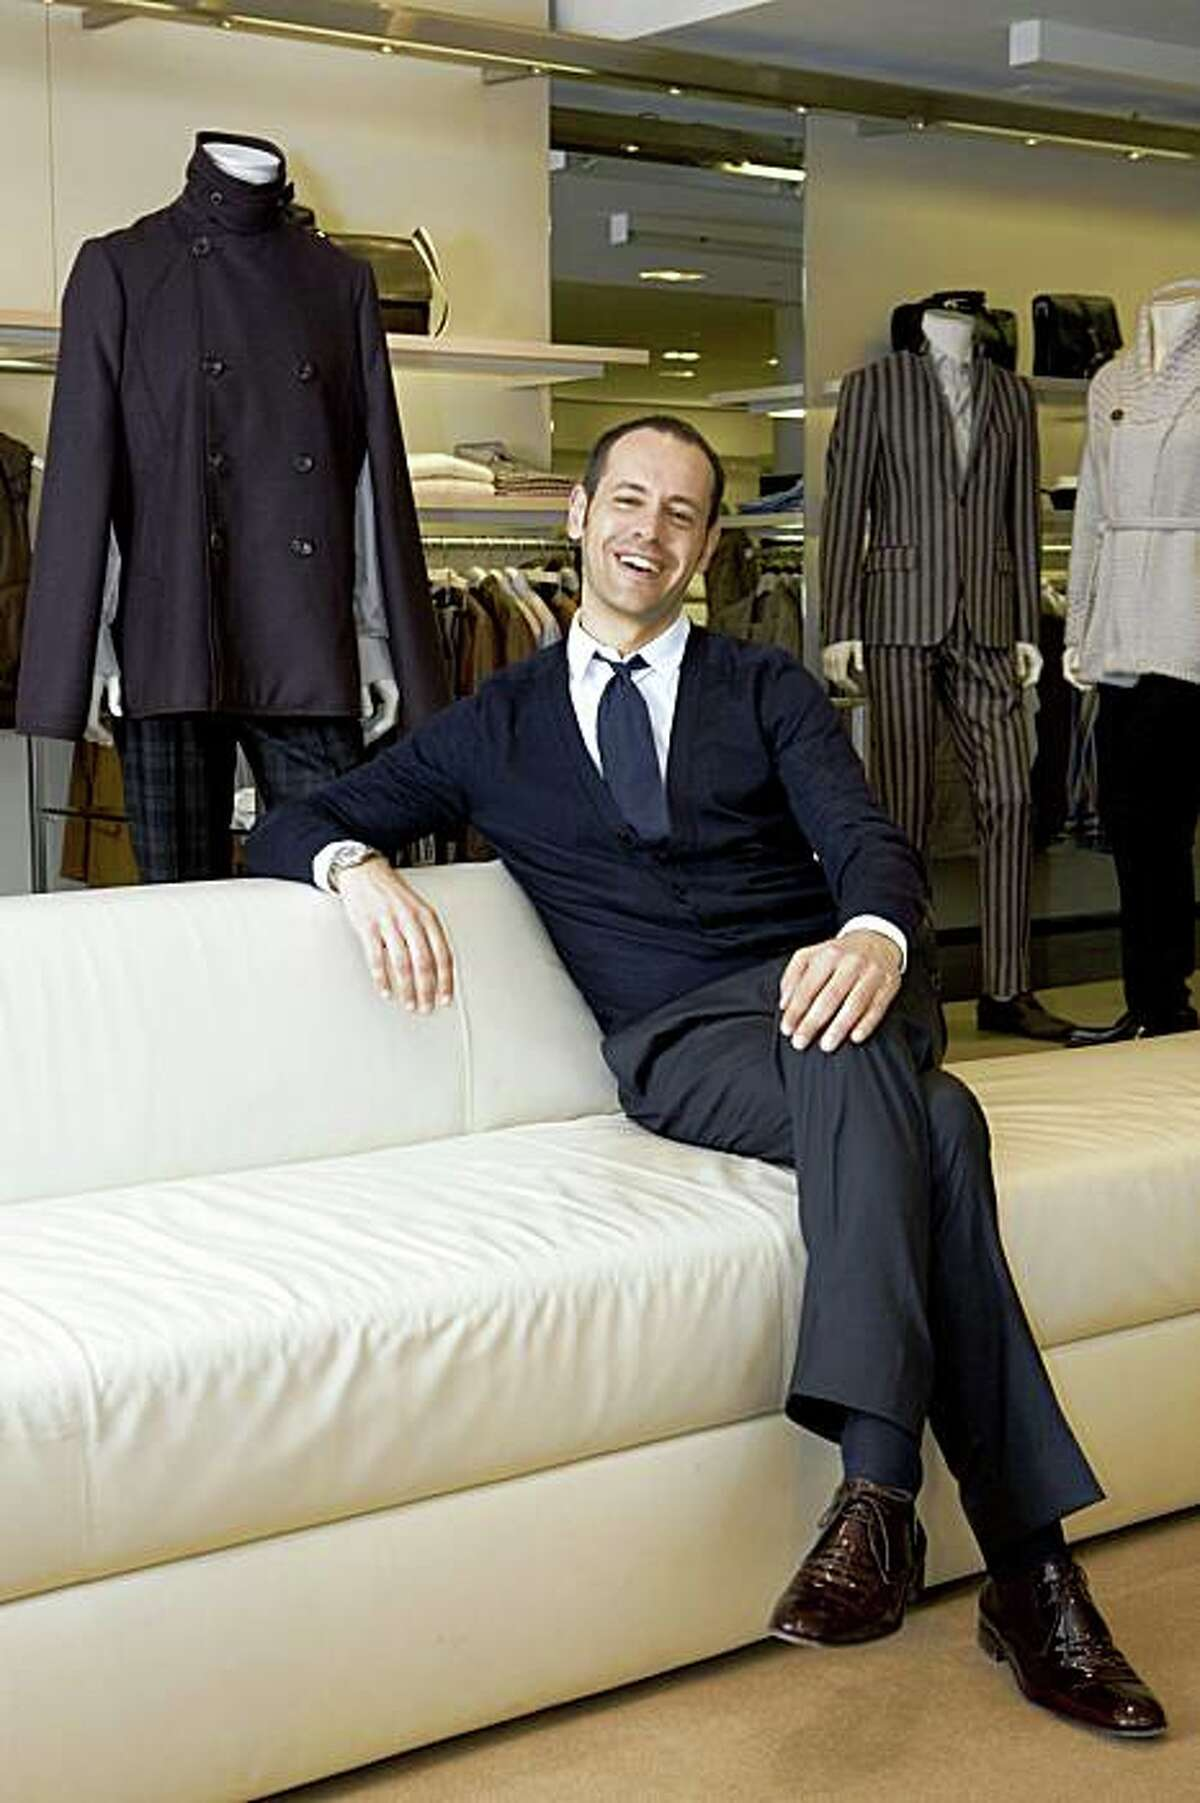 Surrounded by his latest fashion line, Massimiliano Giornetti, the menswear designer for Salvatore Ferragamo Stores sits for a portrait at Ferragamo's in San Francisco, Calif. on Monday, June 1, 2009 before a first ever trunk show. Photo by Kat Wade / Special to the Chronicle